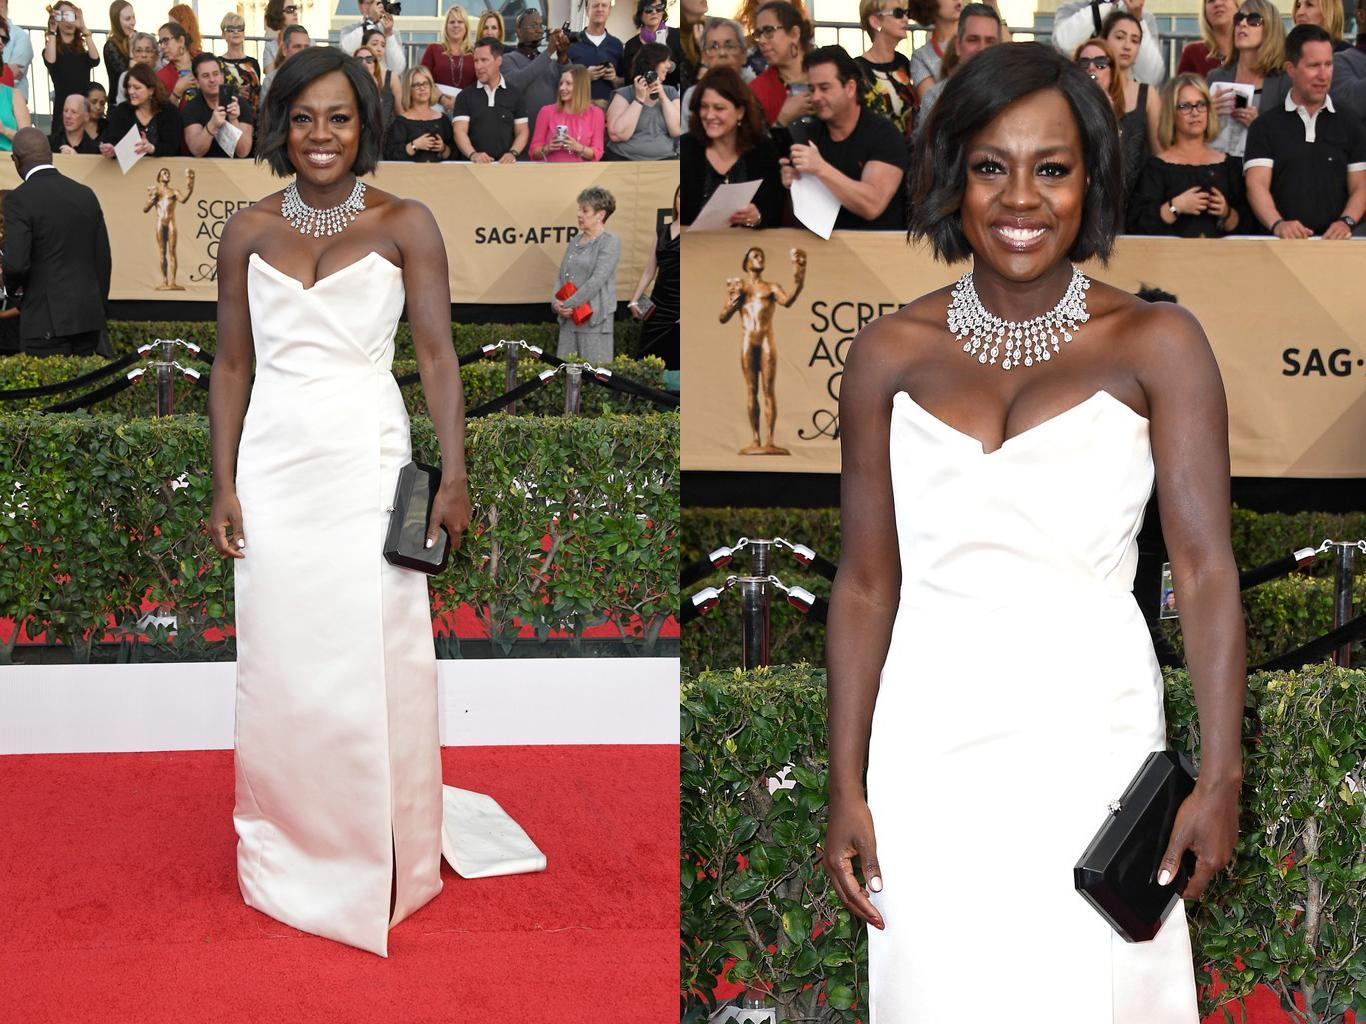 LOS ANGELES, CA - JANUARY 29: Actor Viola Davis attends The 23rd Annual Screen Actors Guild Awards at The Shrine Auditorium on January 29, 2017 in Los Angeles, California. 26592_008 (Photo by Frazer Harrison/Getty Images)